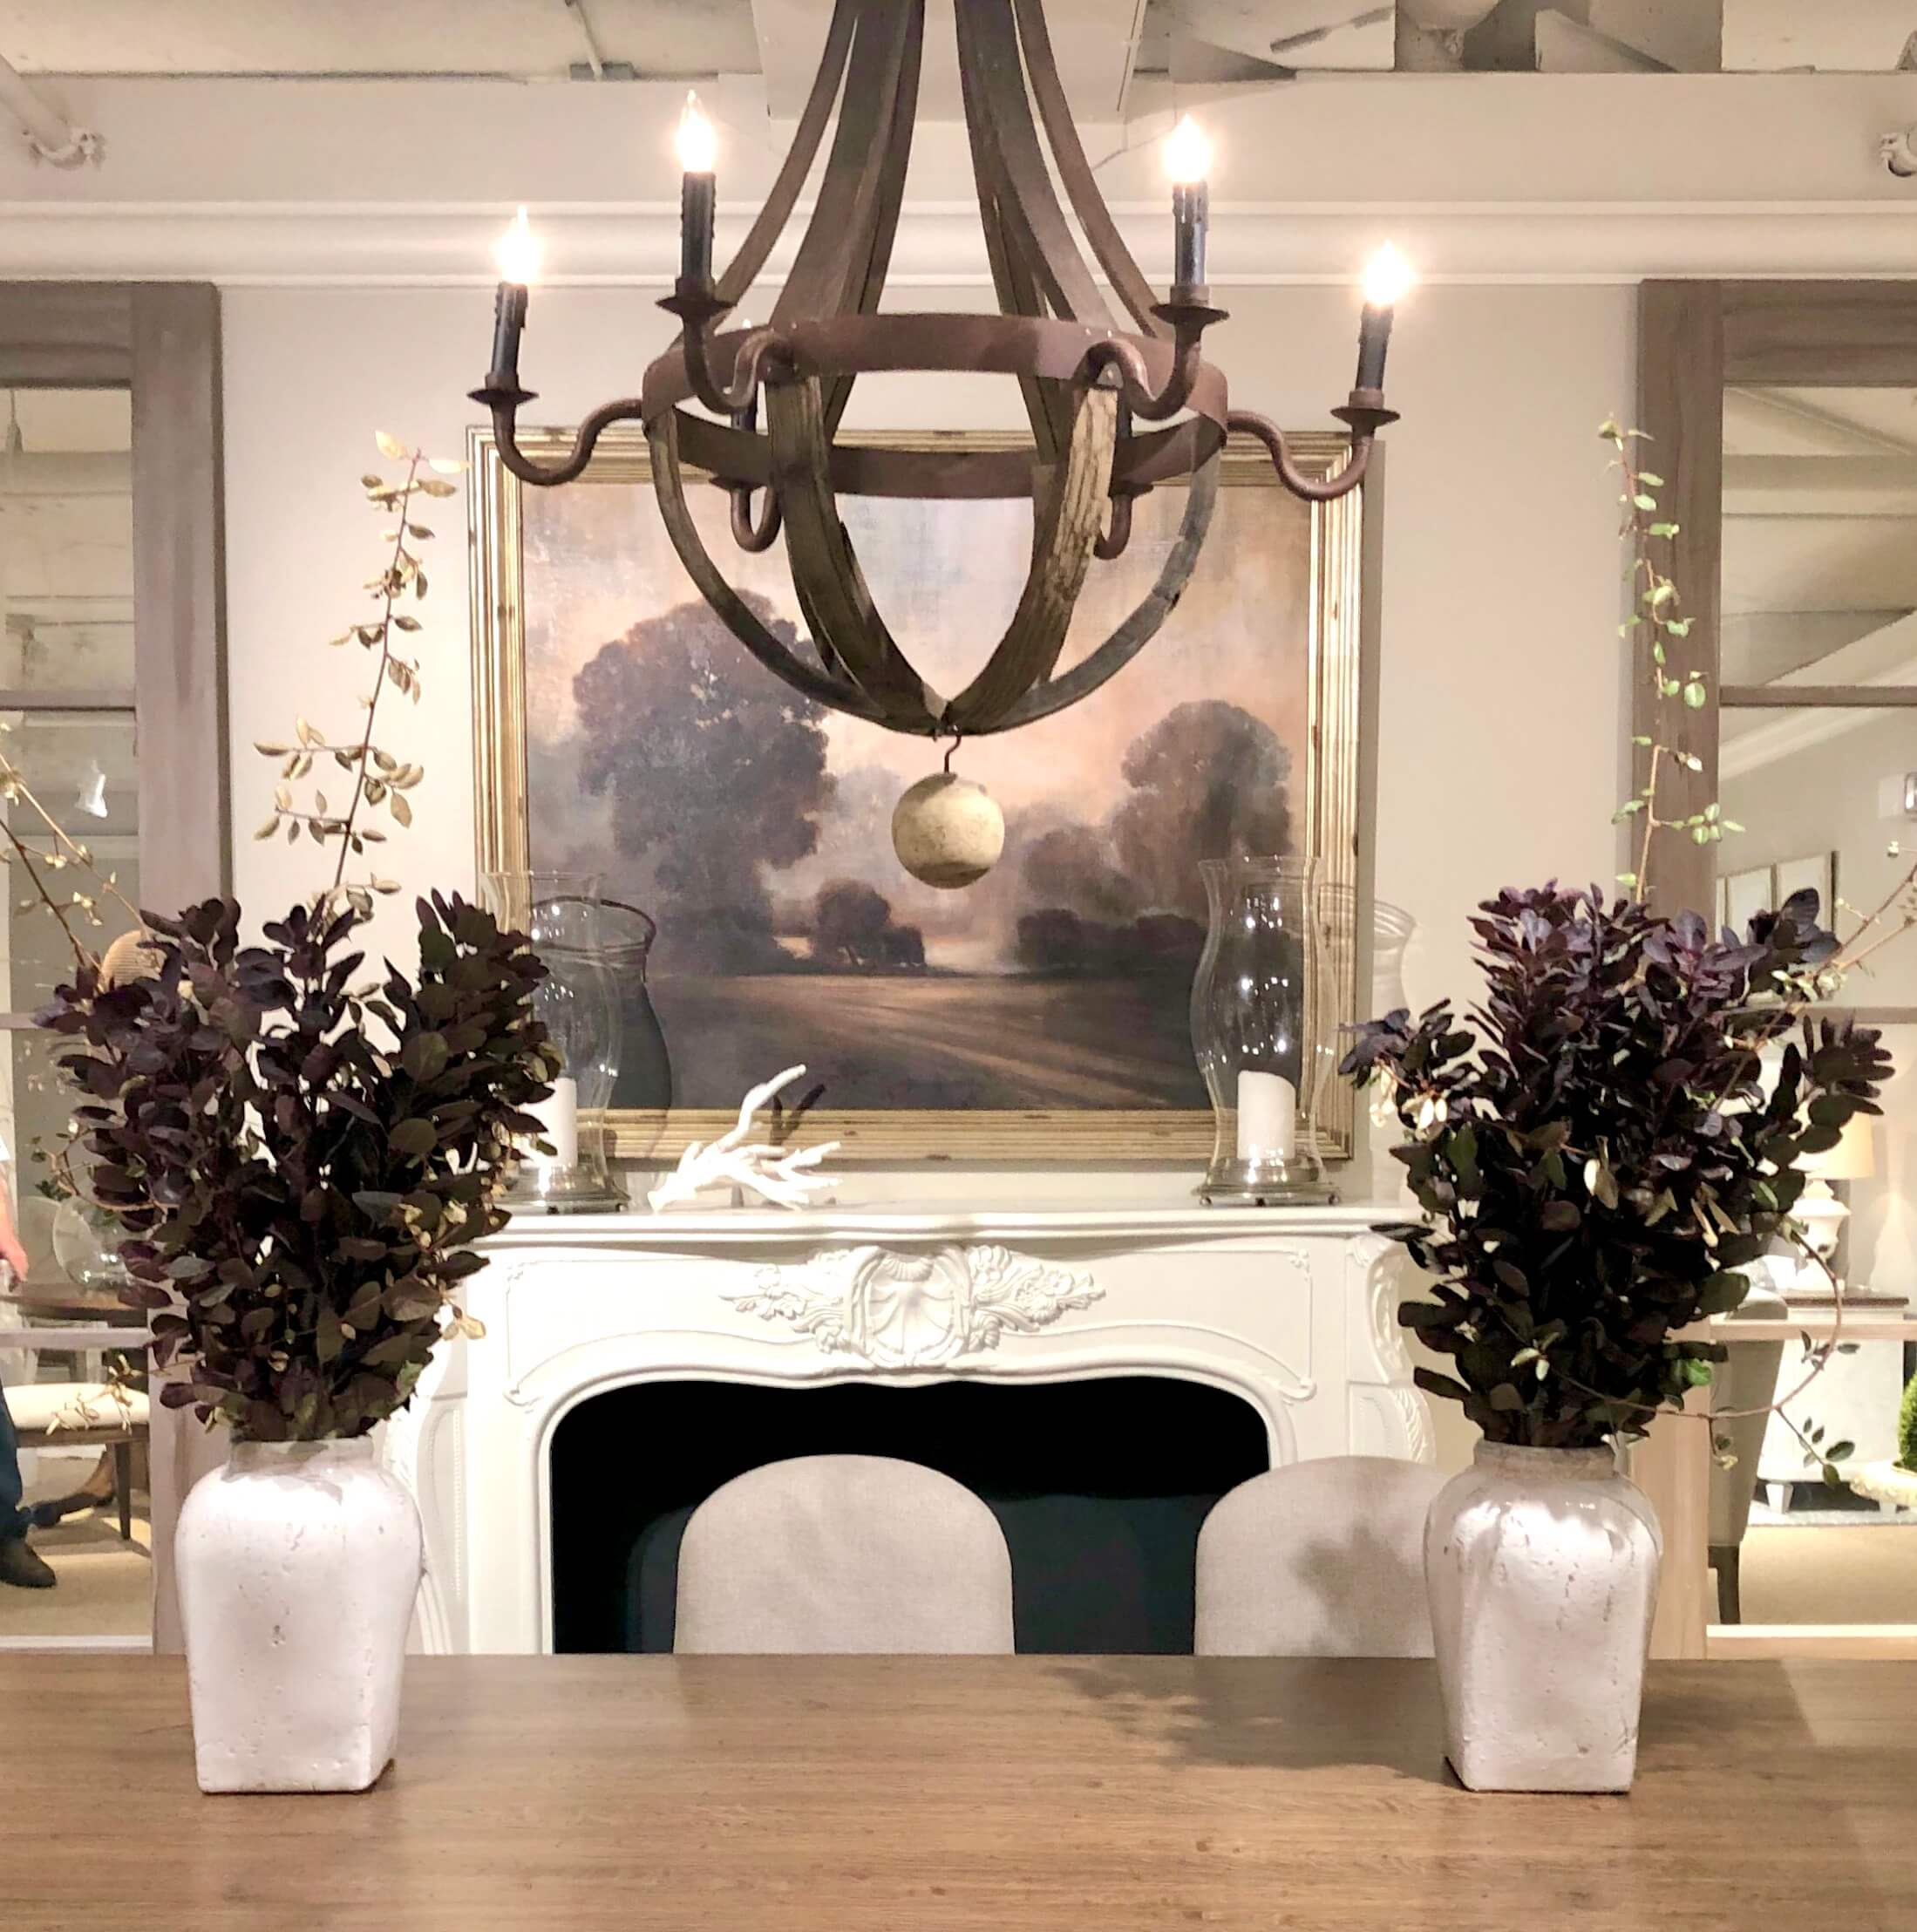 Dining room with fall flowers in the Stanley Showroom |#floralarrangement #fallflowers